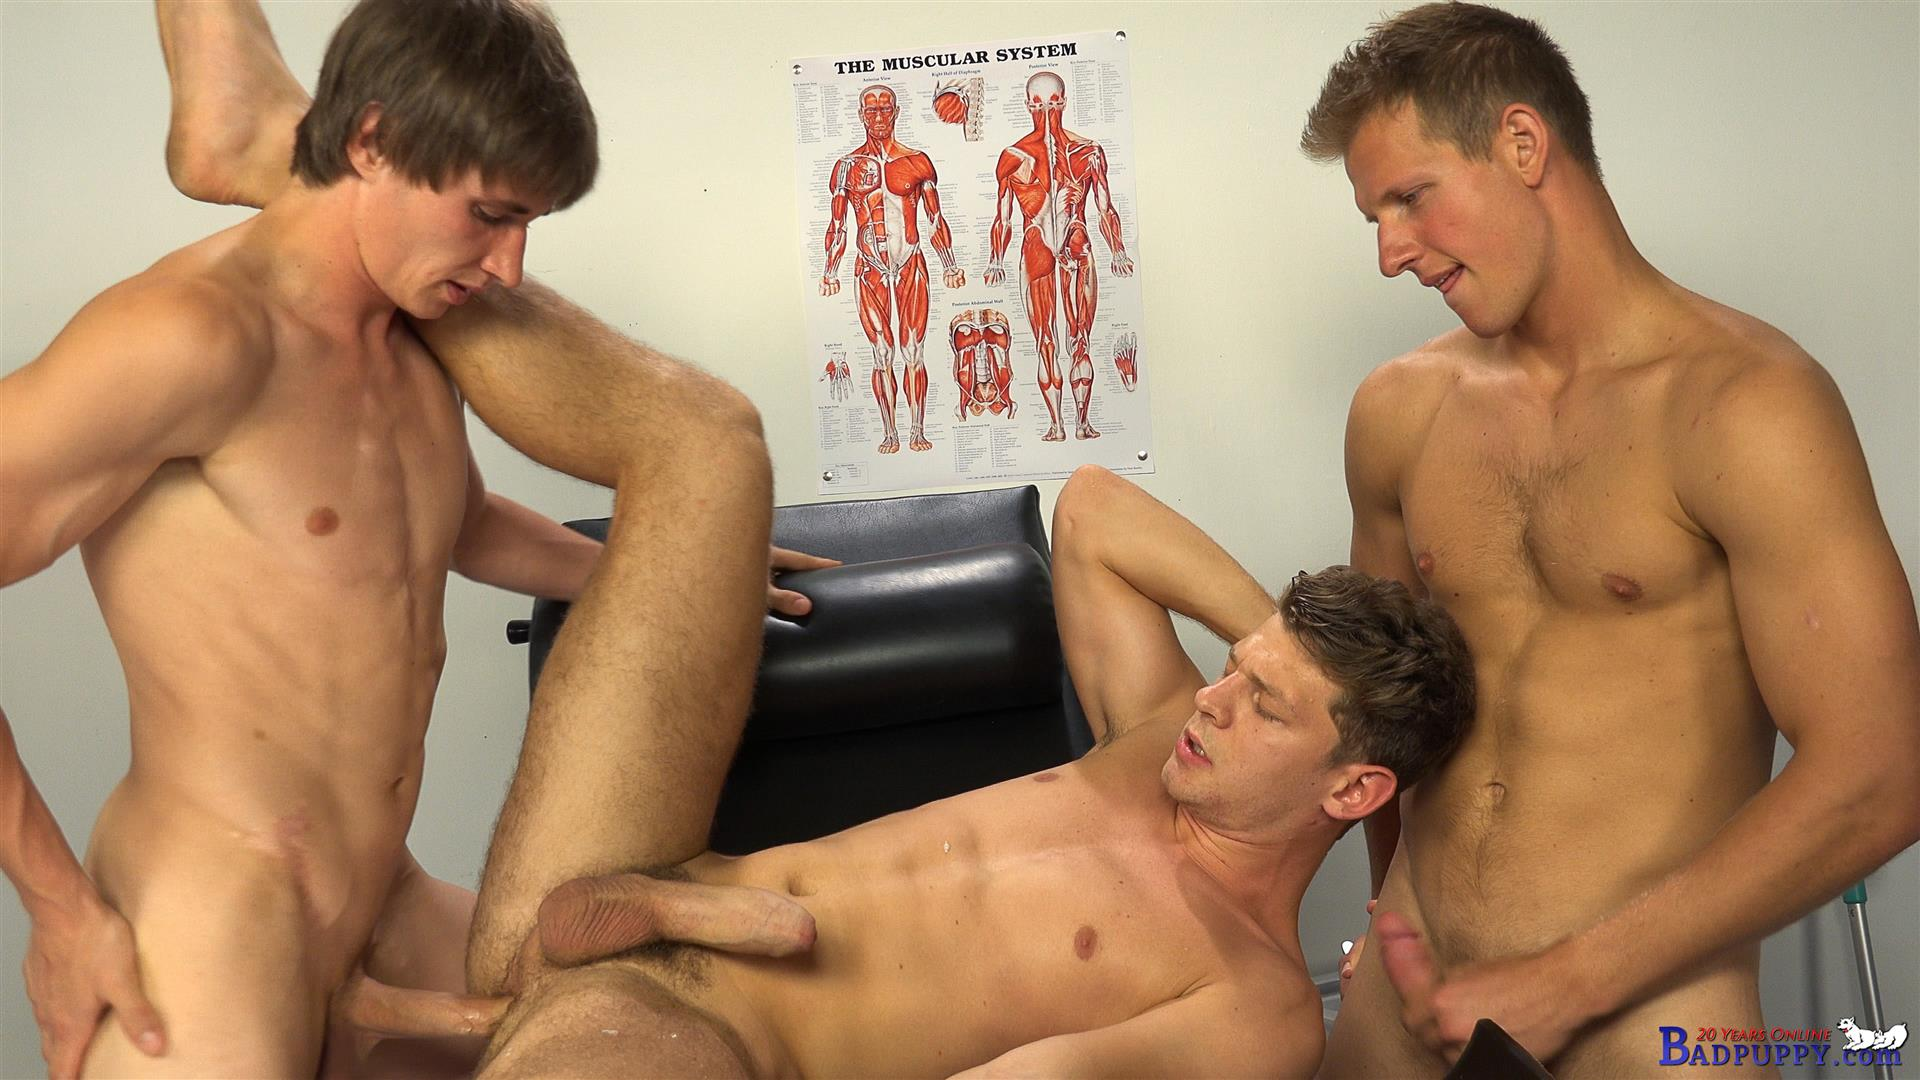 Badpuppy-Dave-Cargo-and-Robin-Valej-and-Rosta-Benecky-Uncut-Cock-Bareback-Amateur-Gay-Porn-33 Czech Twinks Playing Doctor With Their Bareback Uncut Cocks